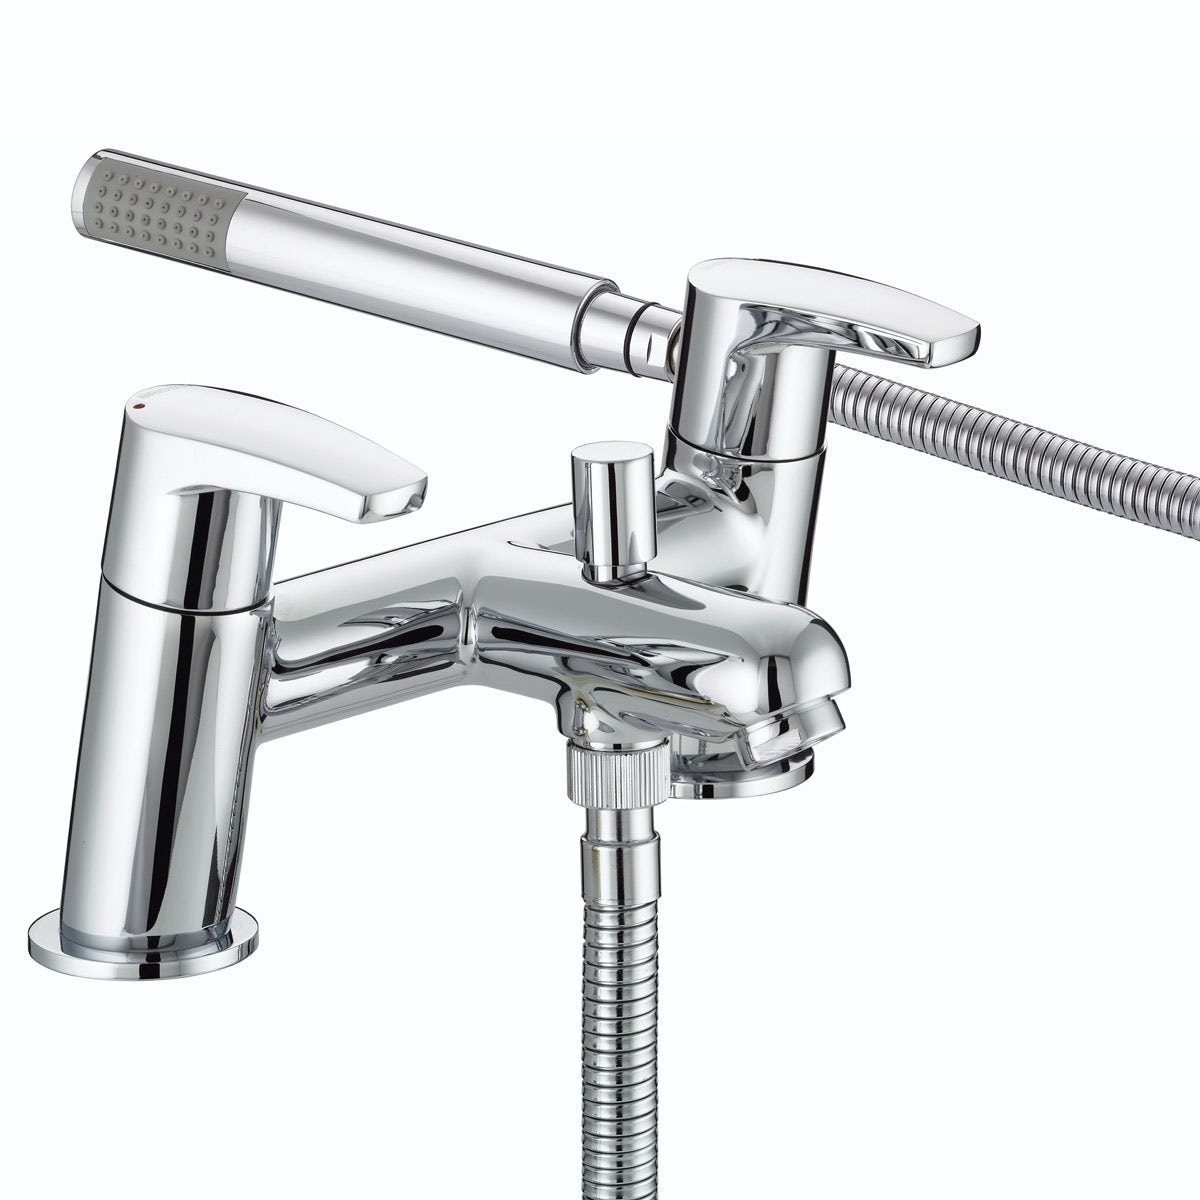 Bristan Orta bath shower mixer tap